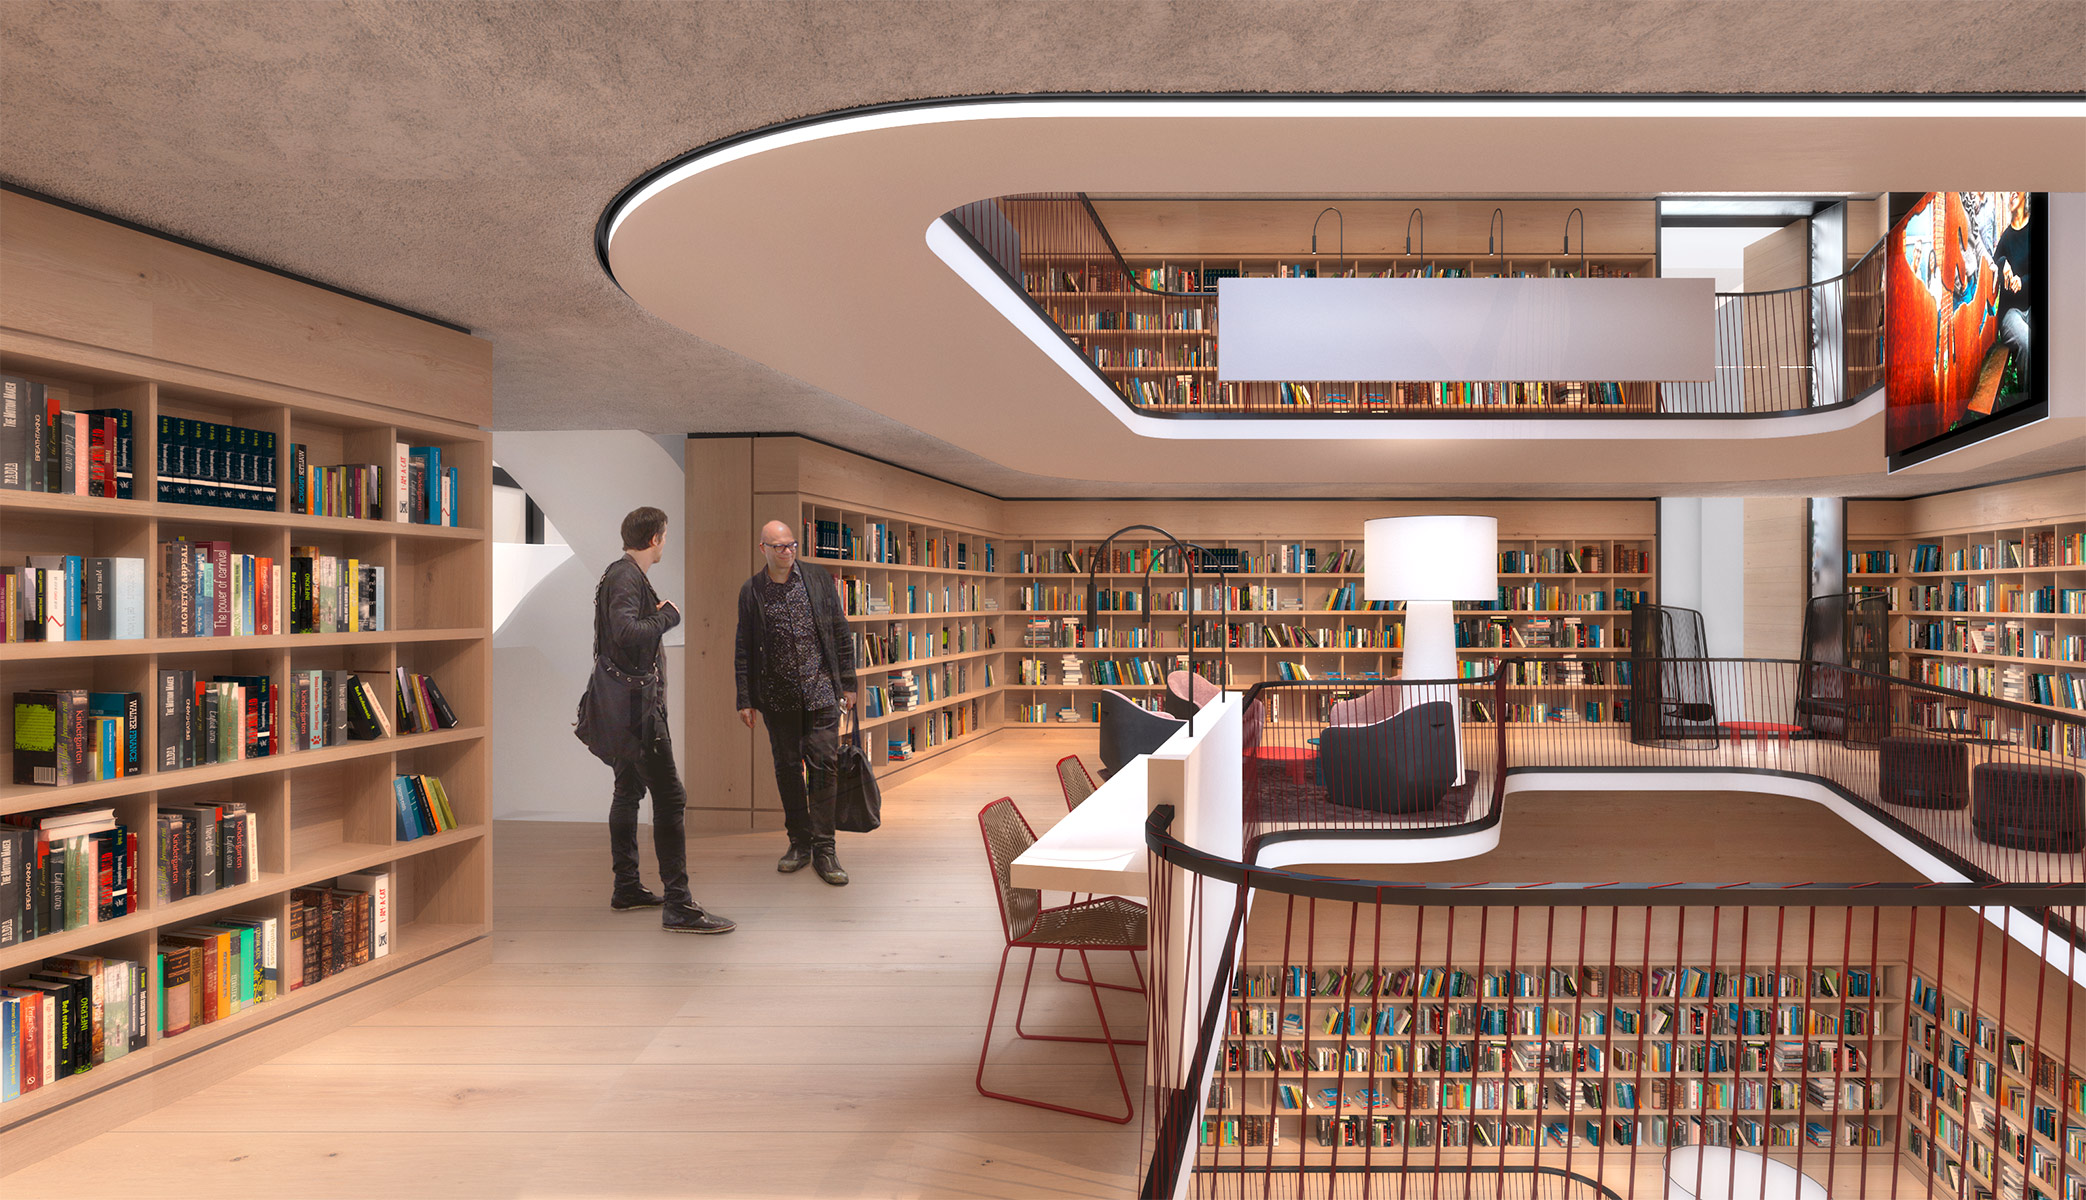 The new Schorndorf City Library, Schorndorf. A project by Ippolito Fleitz Group – Identity Architects.